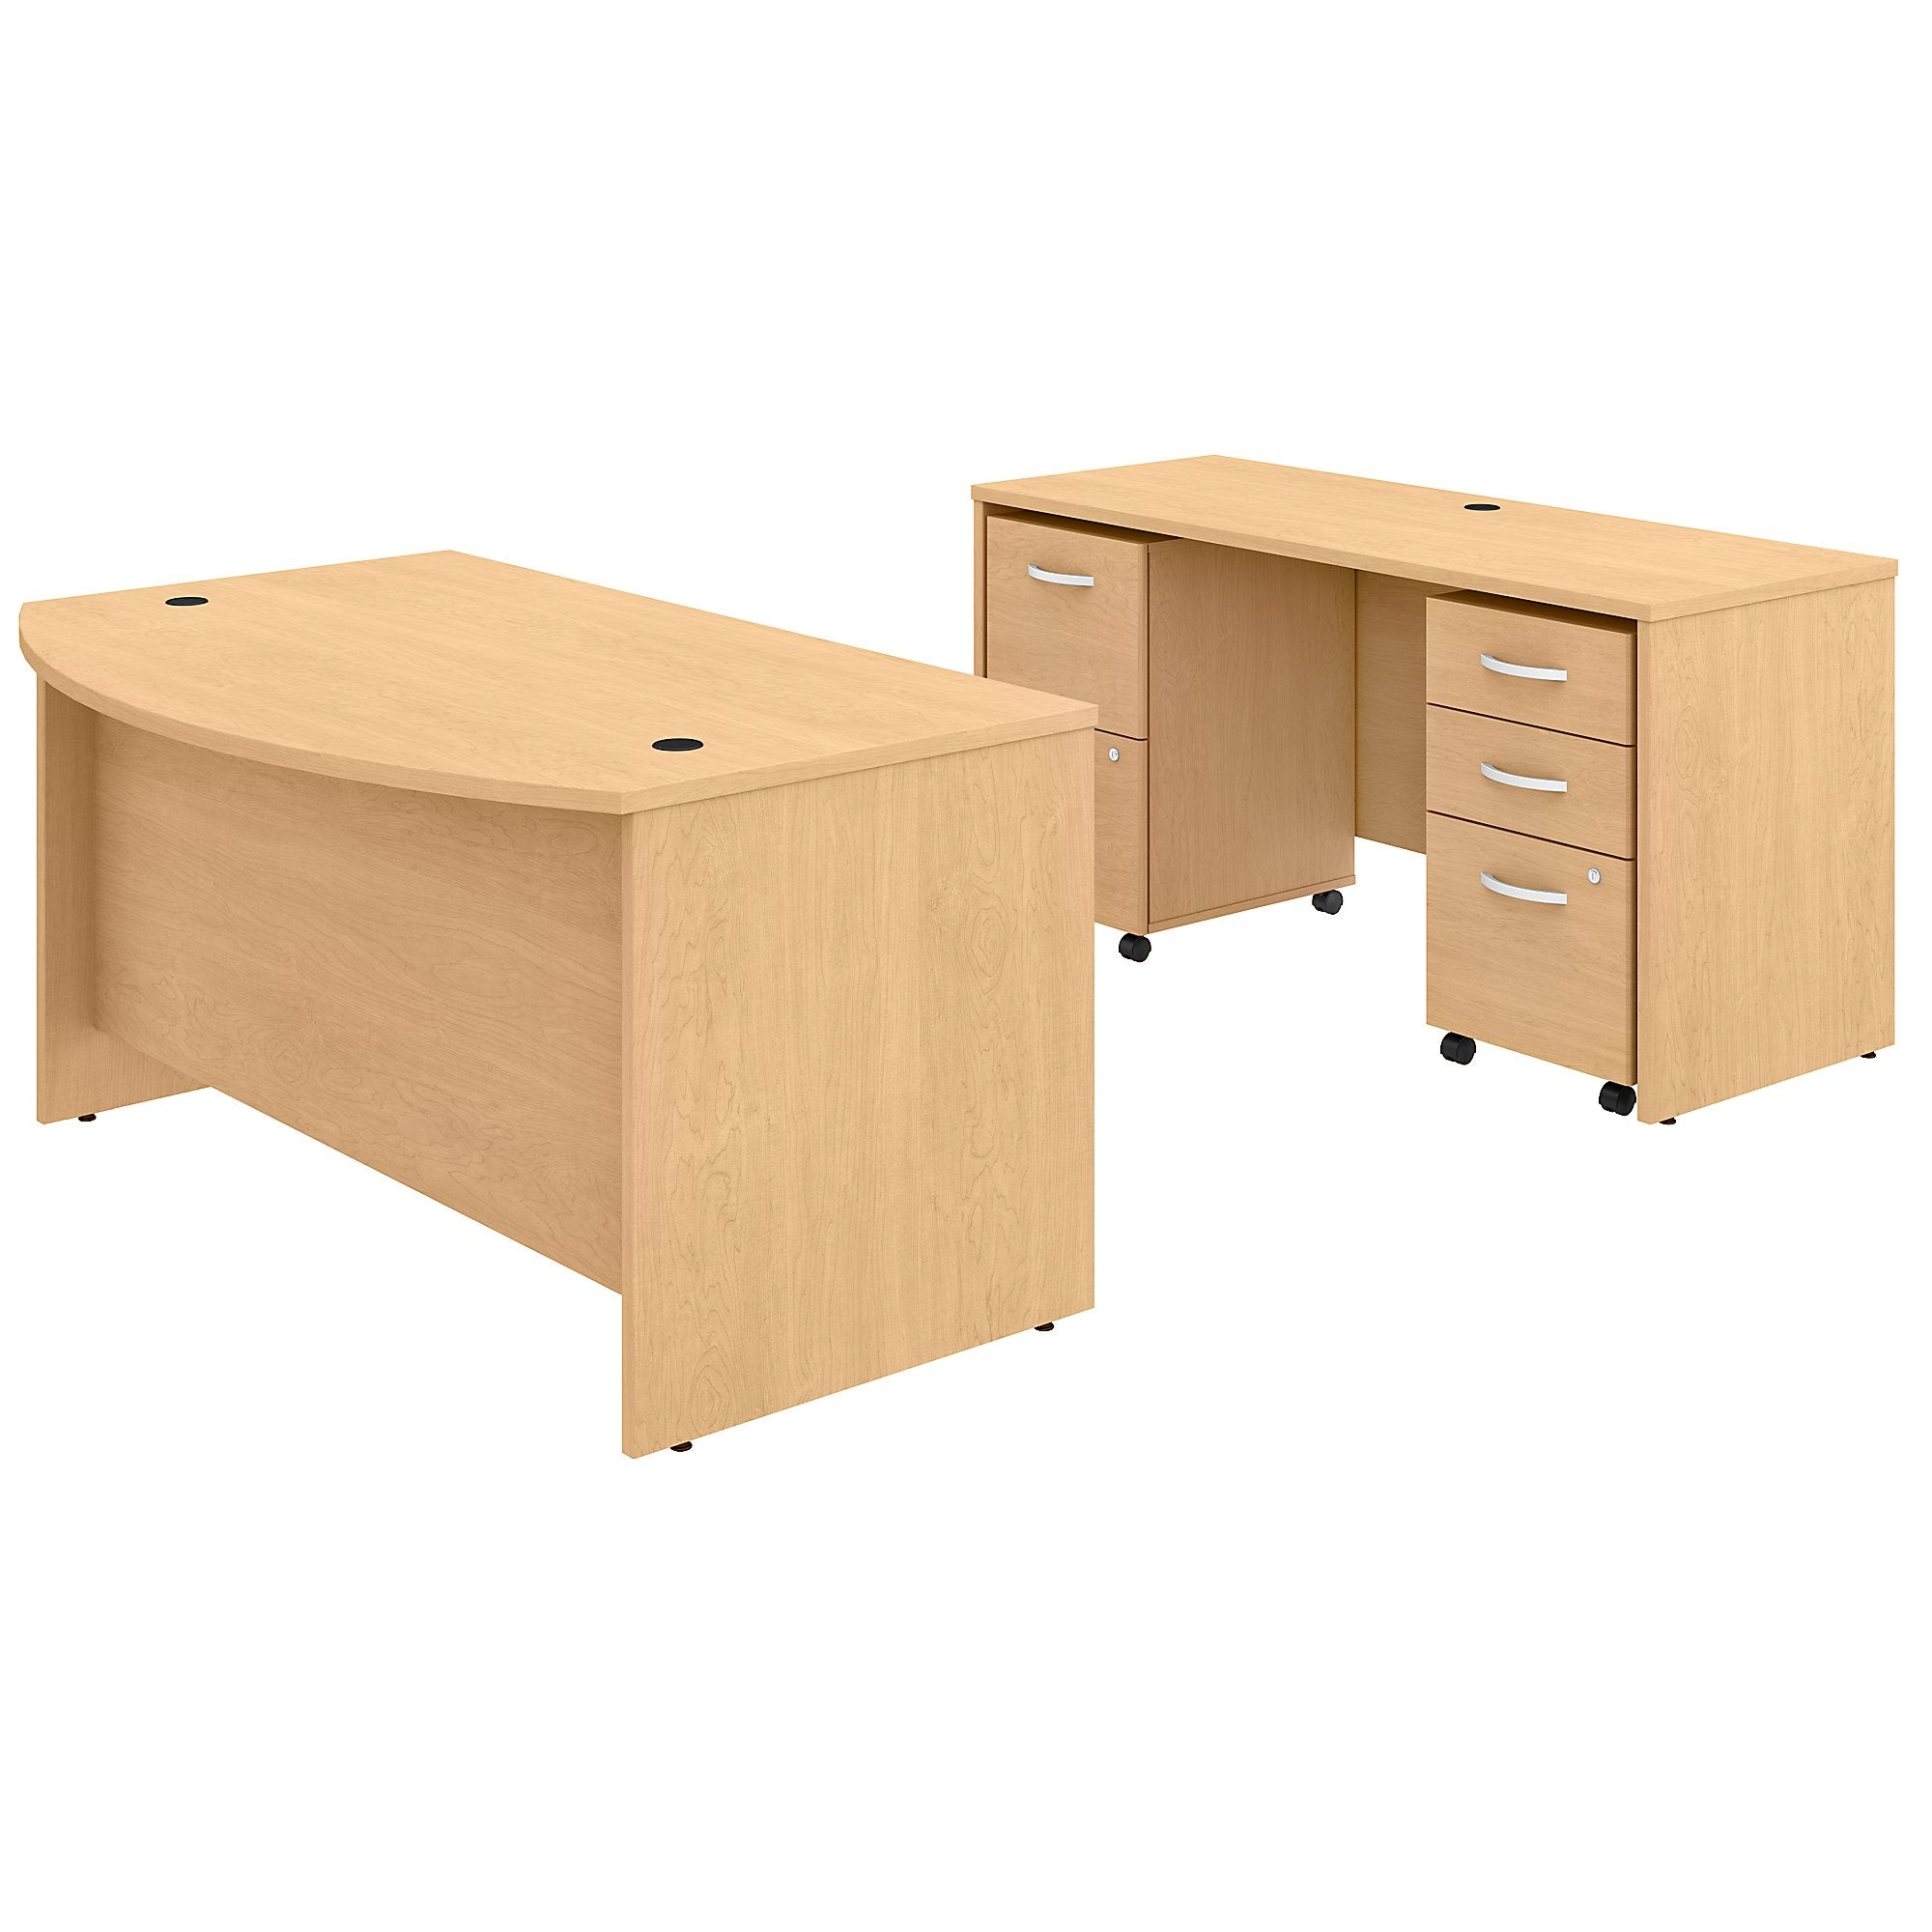 Studio C 60W x 36D Bow Front Desk & Credenza with Mobile File Cabinets